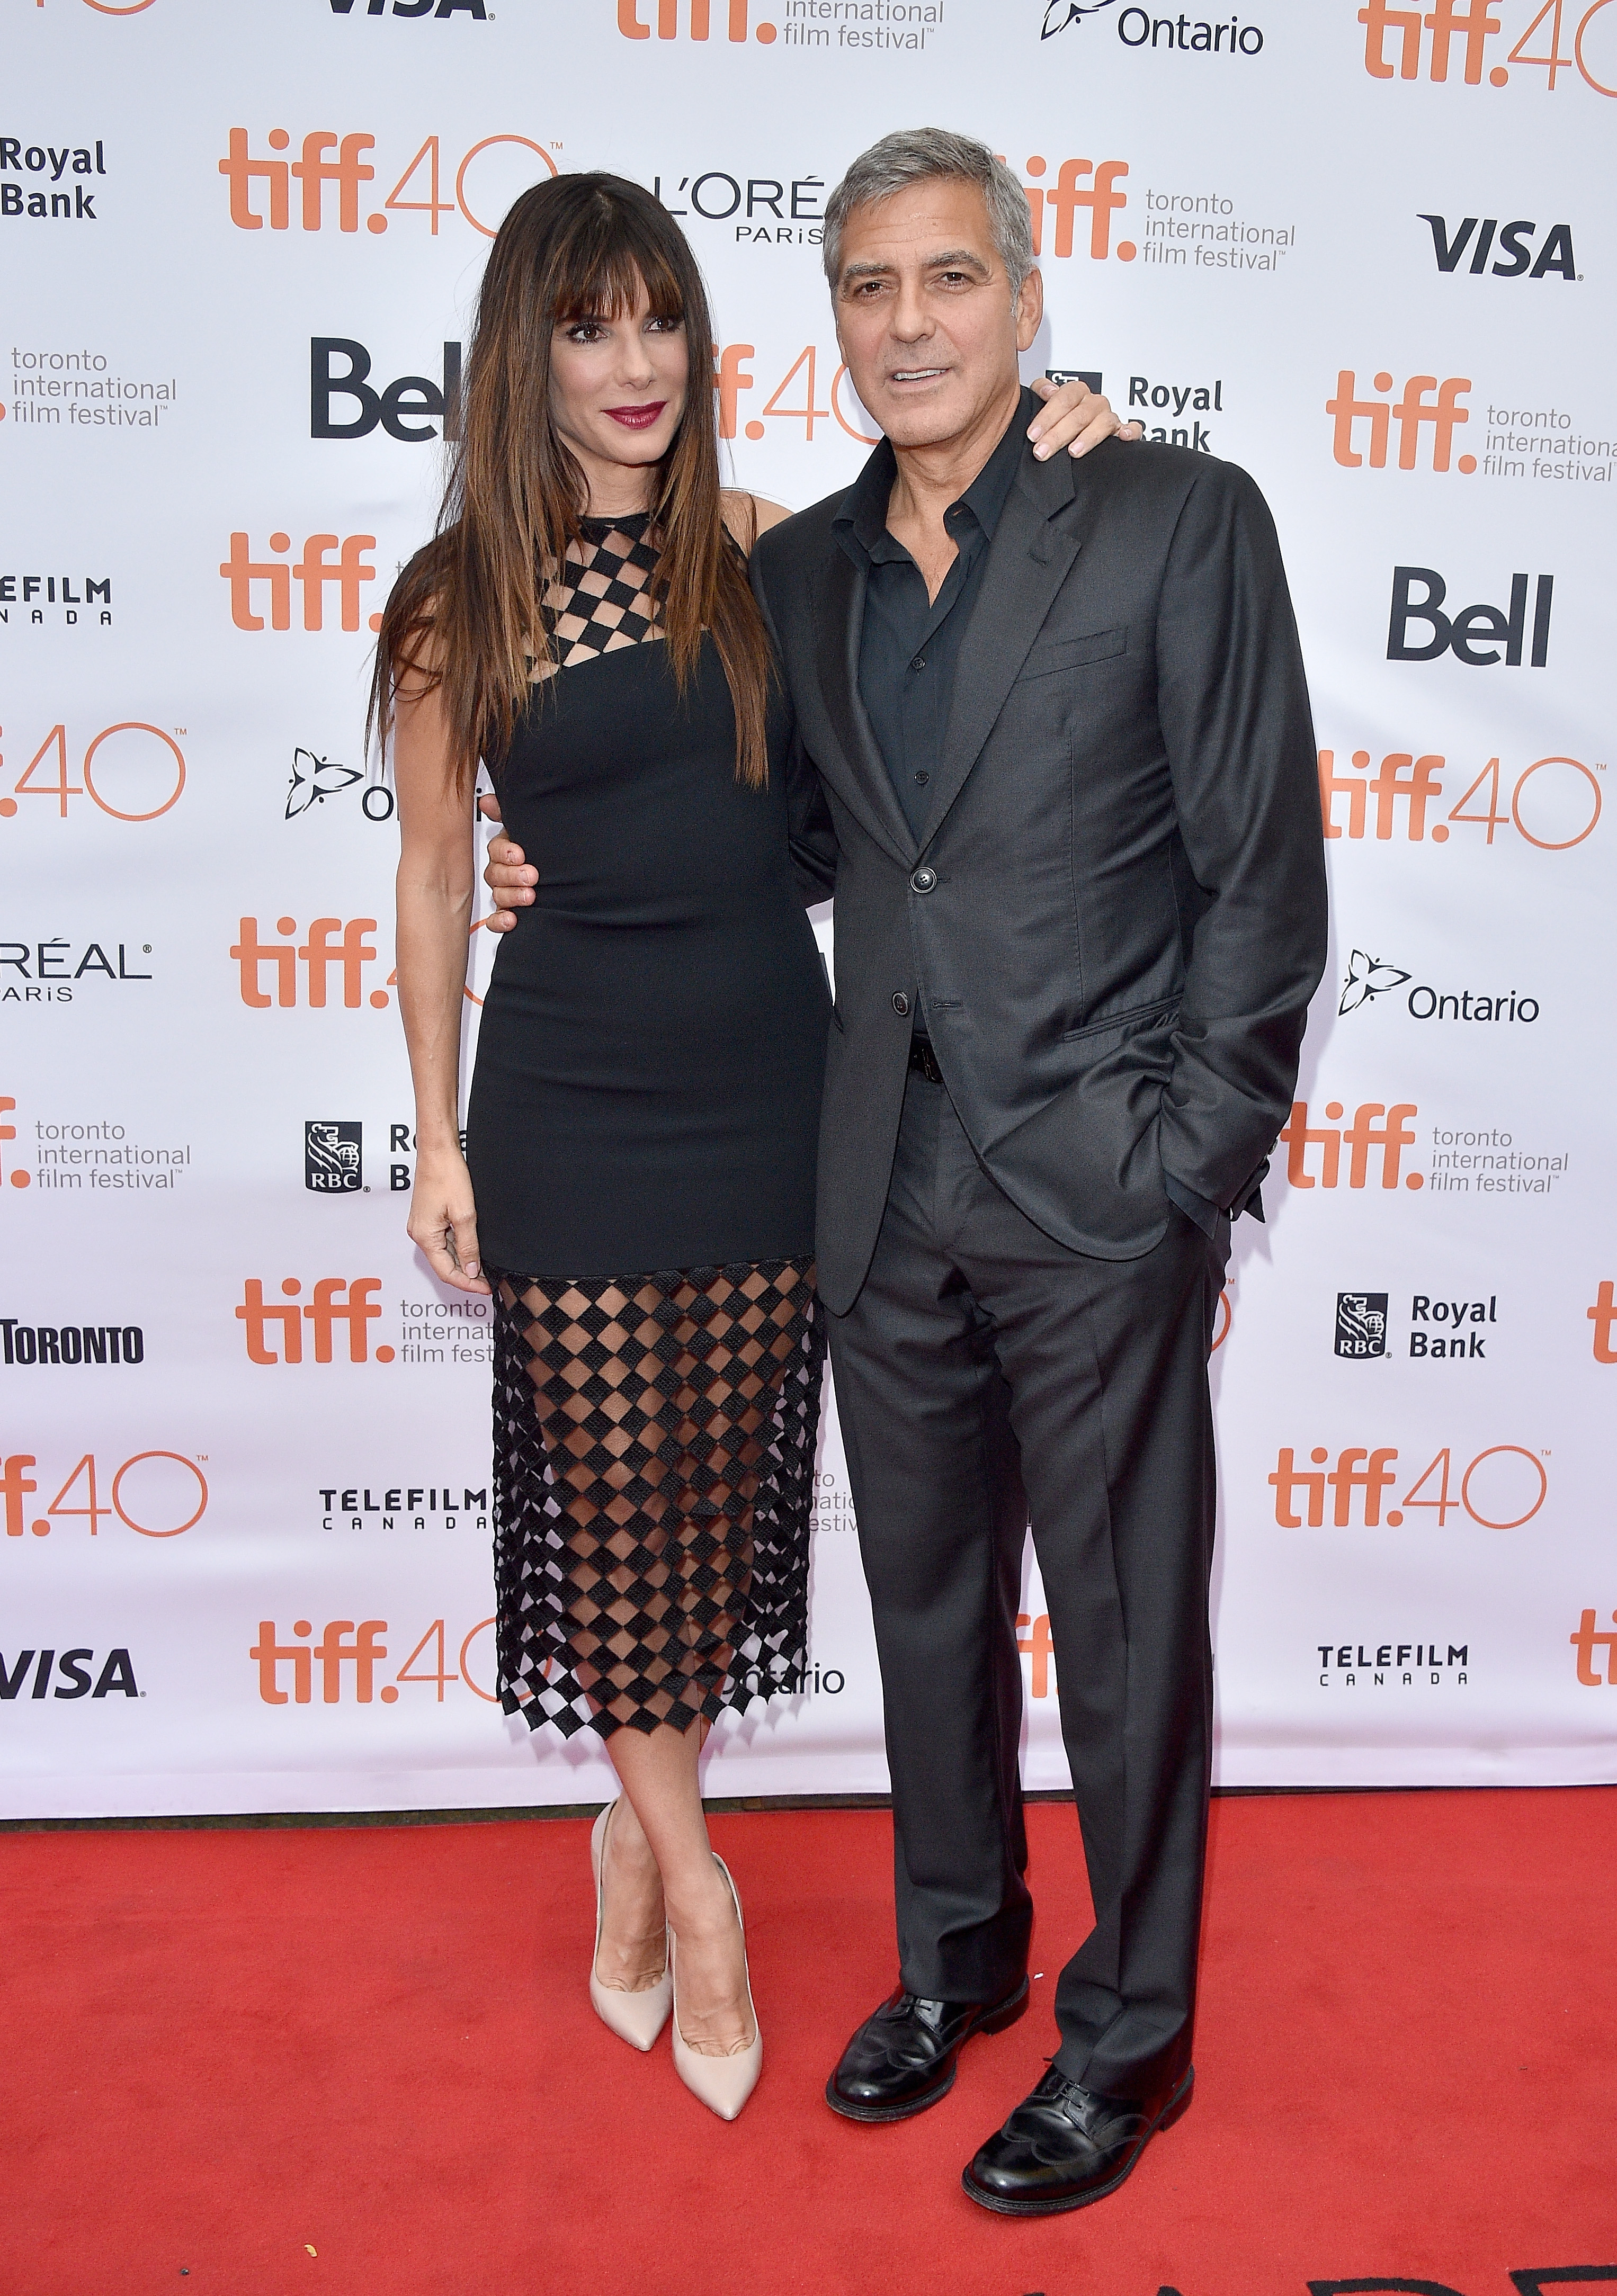 Sandra Bullock and George Clooney attend a premiere during the 2015 Toronto International Film Festival on Sept. 11, 2015.